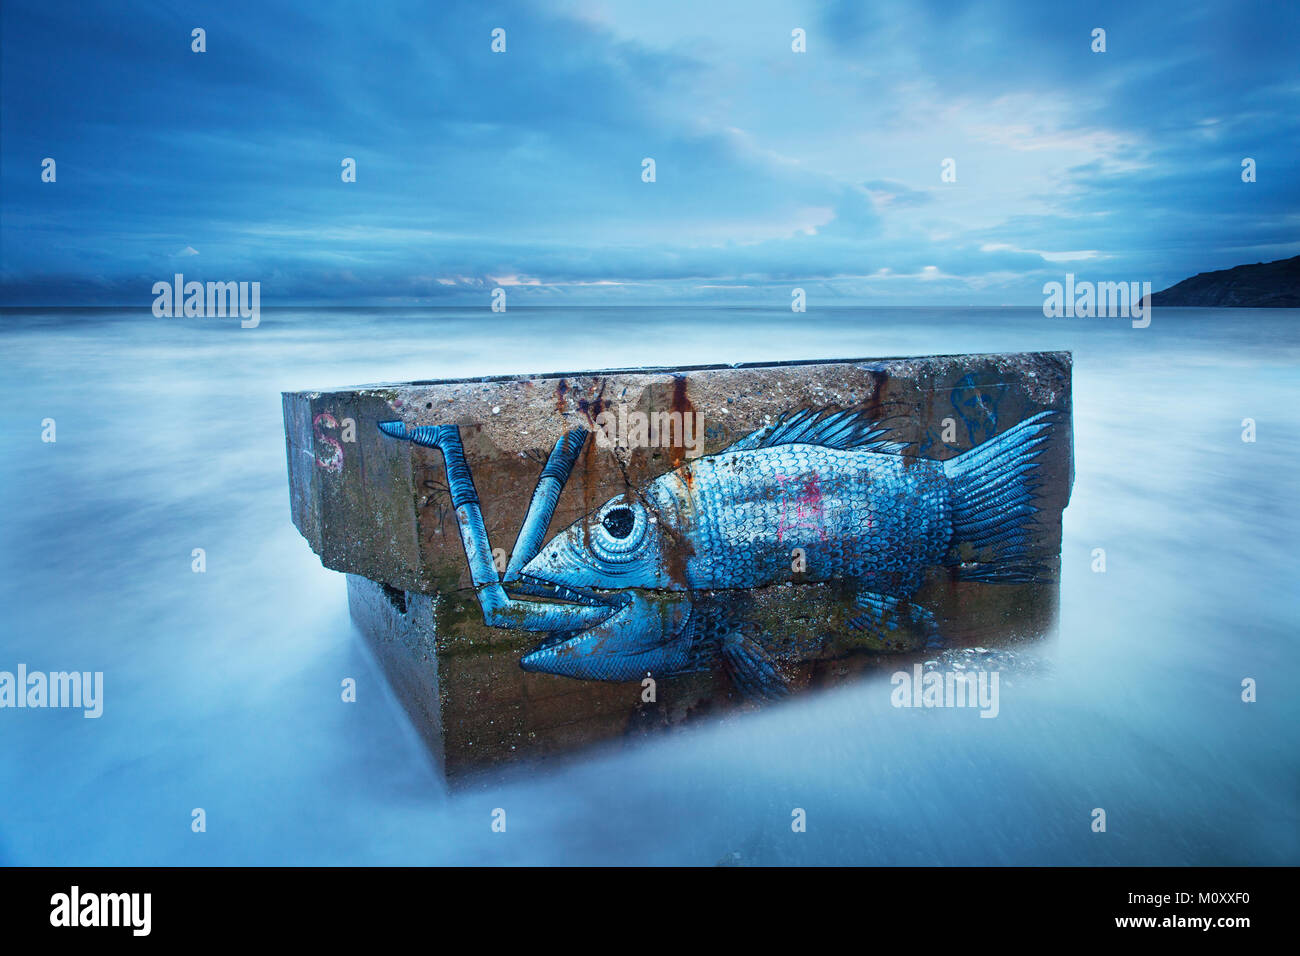 A Graffiti fish on a pill box on Cayton Bay at high tide with the sea lapping the pill box. Long exposure. - Stock Image